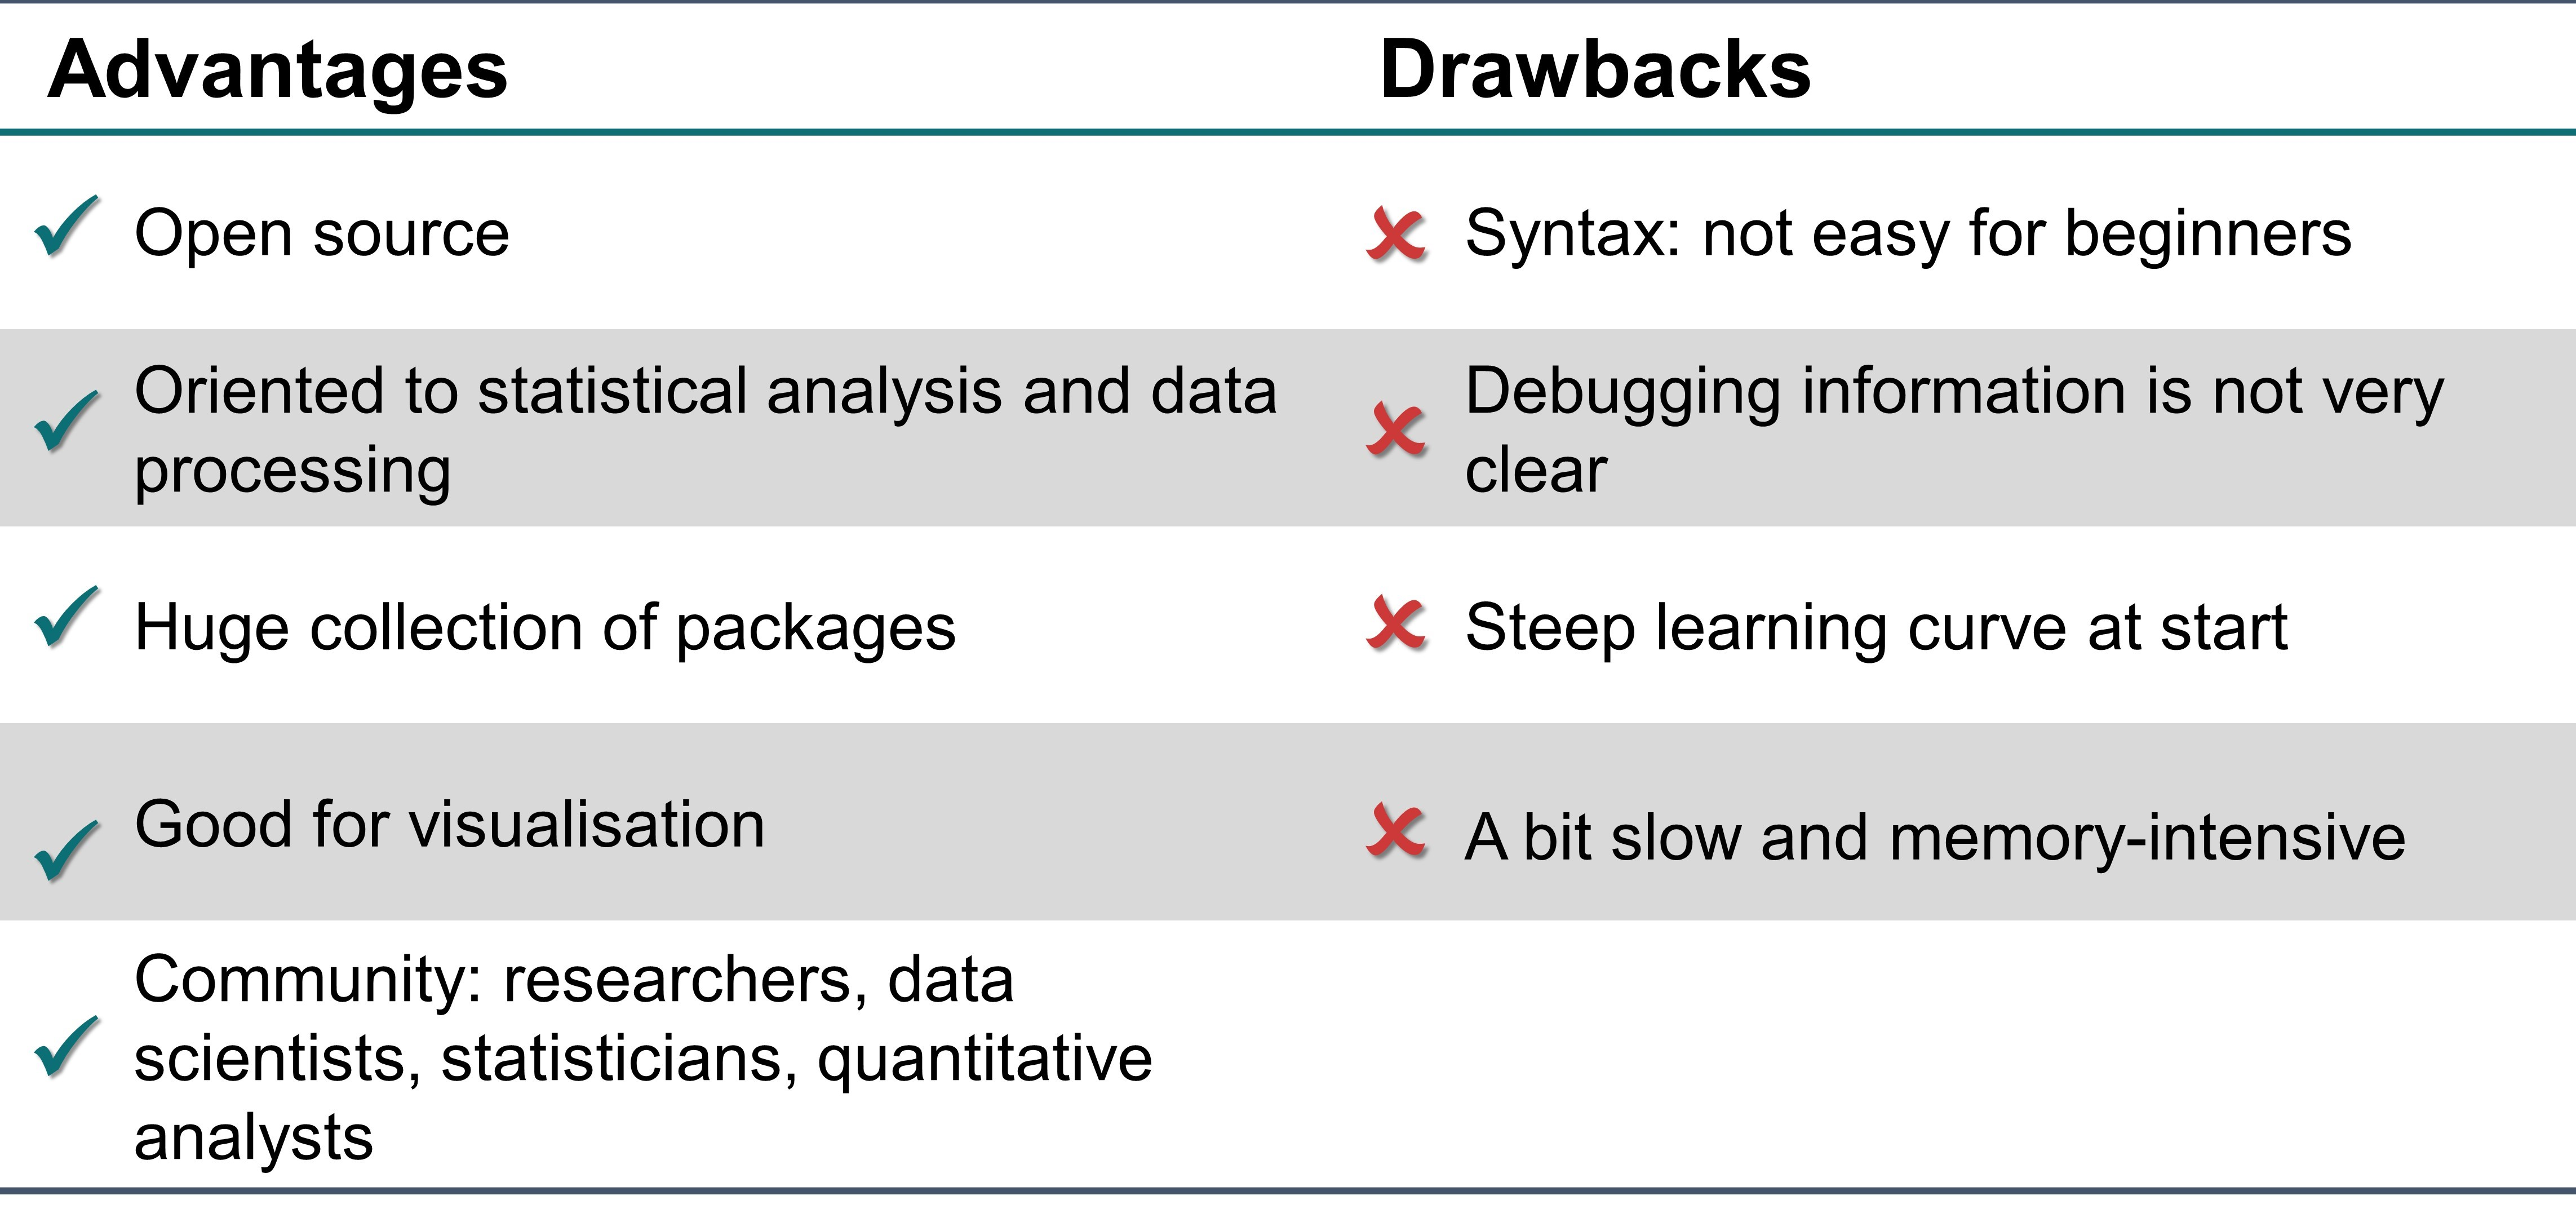 Table 6.4.4 The advantages and drawbacks of Julia